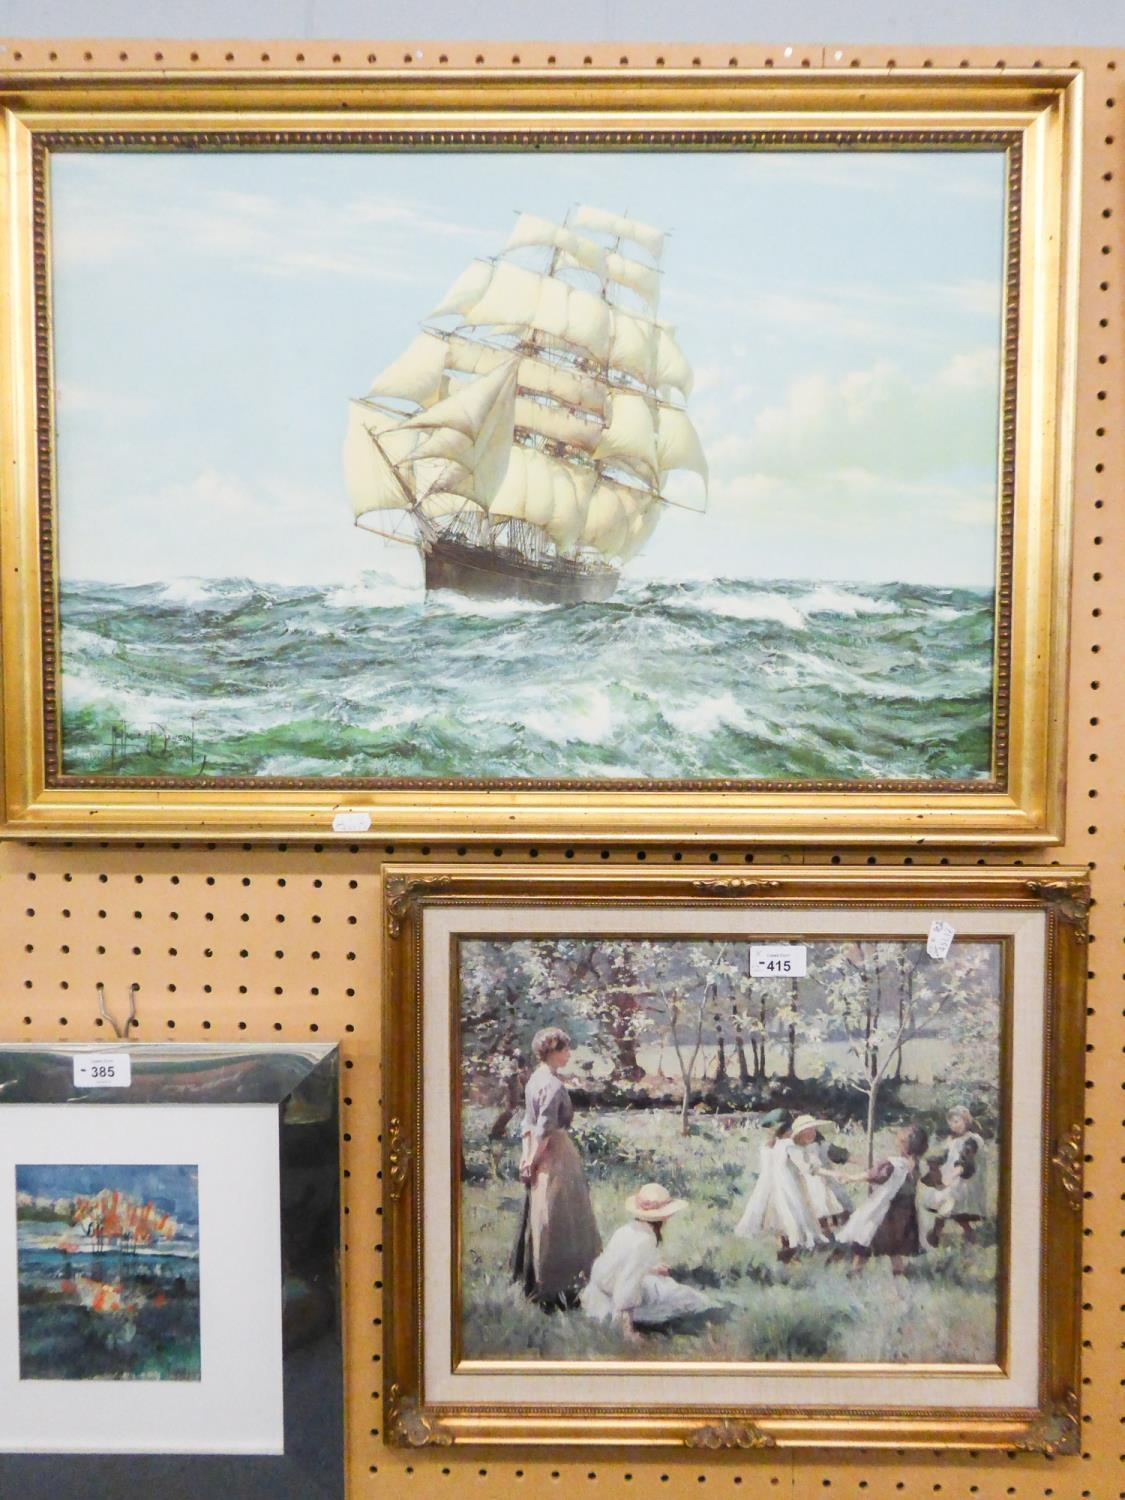 Lot 415 - COLOUR PRINT, CLIPPER SHIP AND 'MAY TIME' BY HAROLD HARVEY (1874-1941) (2)